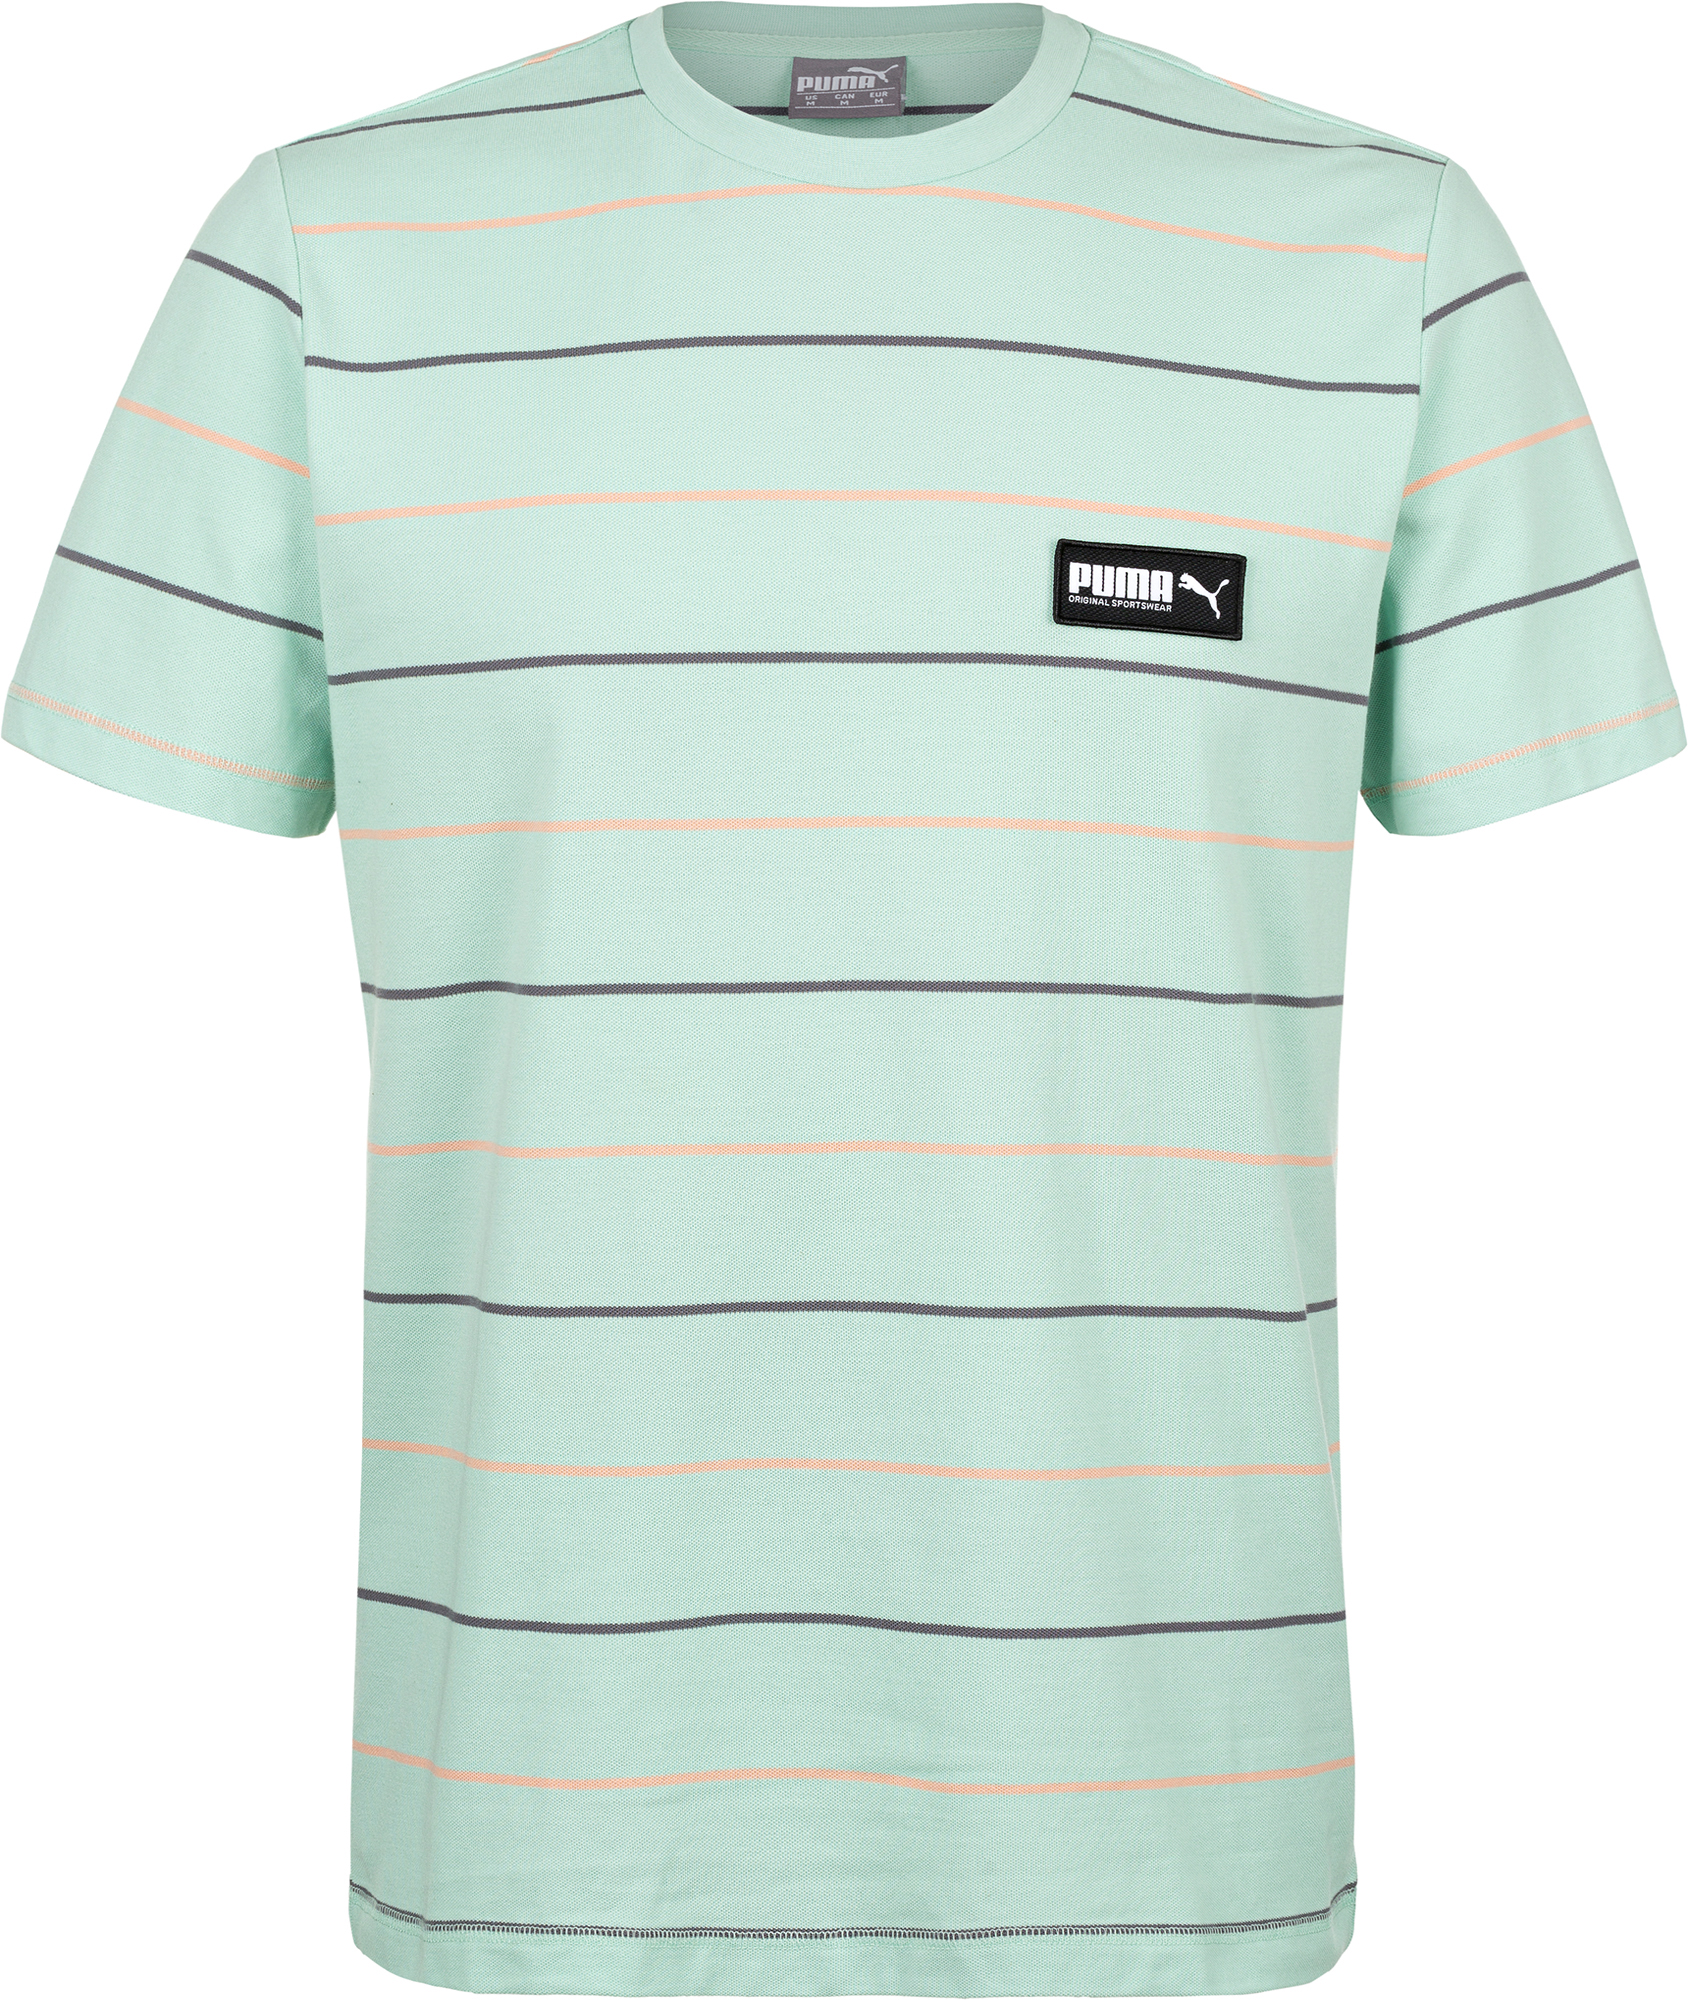 Puma Футболка мужская Puma FUSION Striped Tee, размер 48-50 slim striped fitted tee